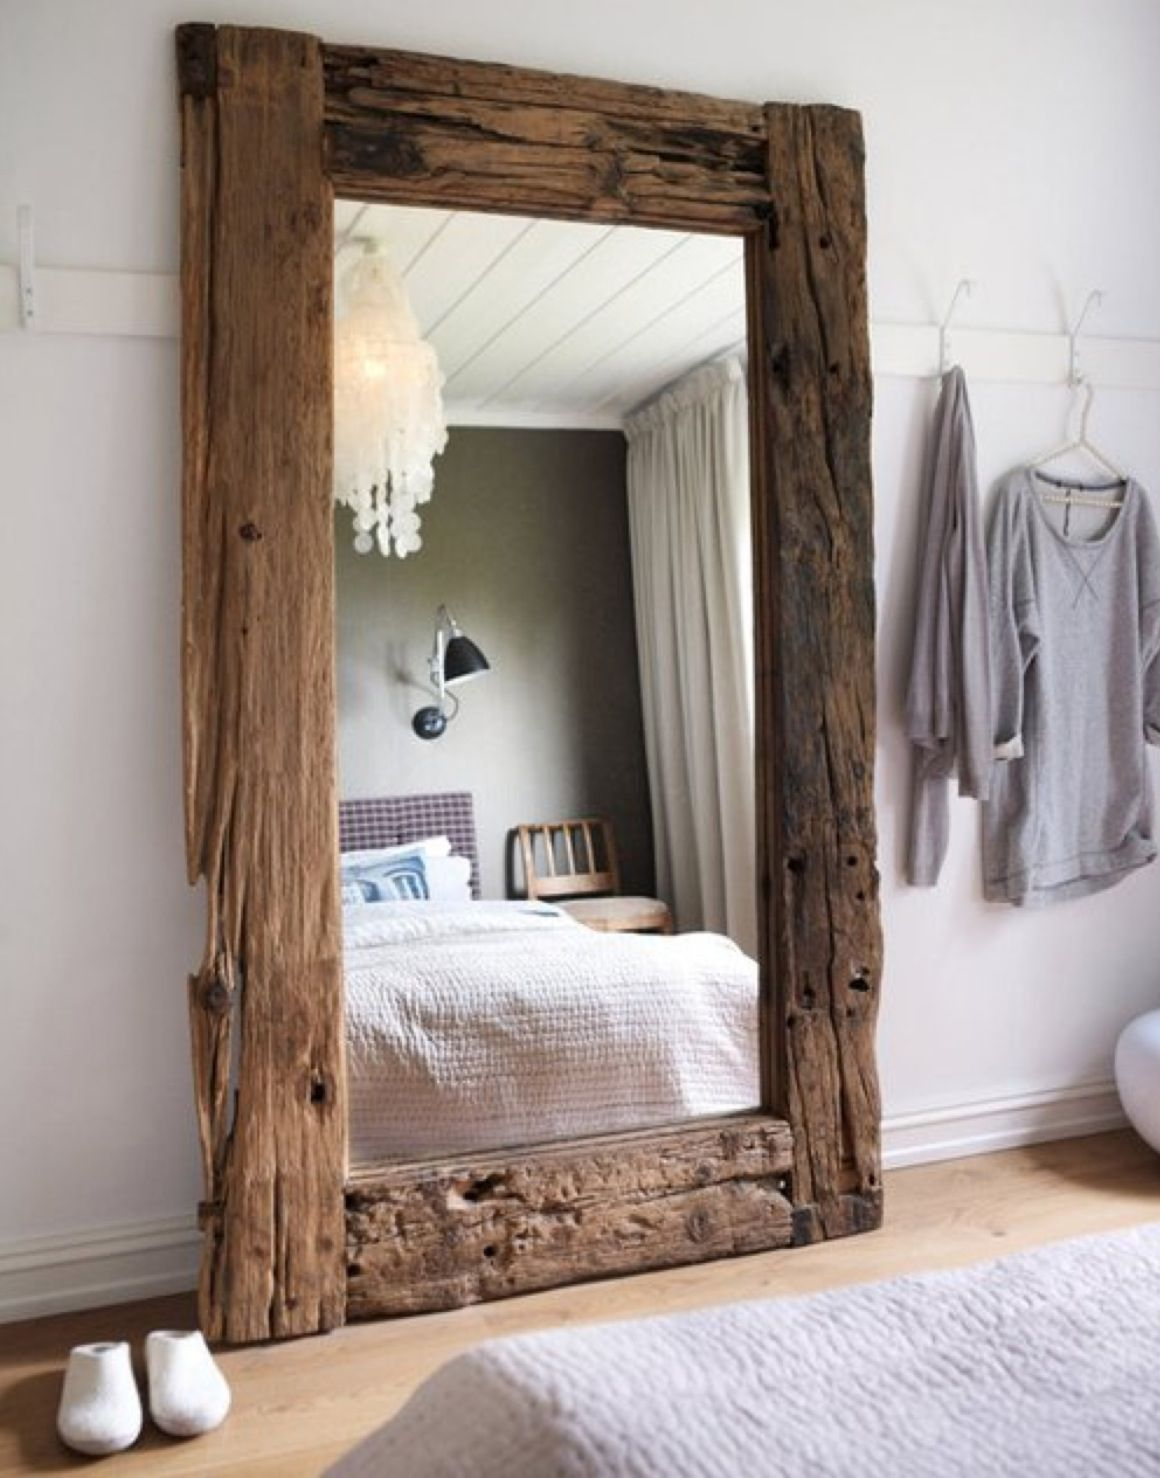 Upcycling Design Mirrors Framed With Reclaimed Wood Home